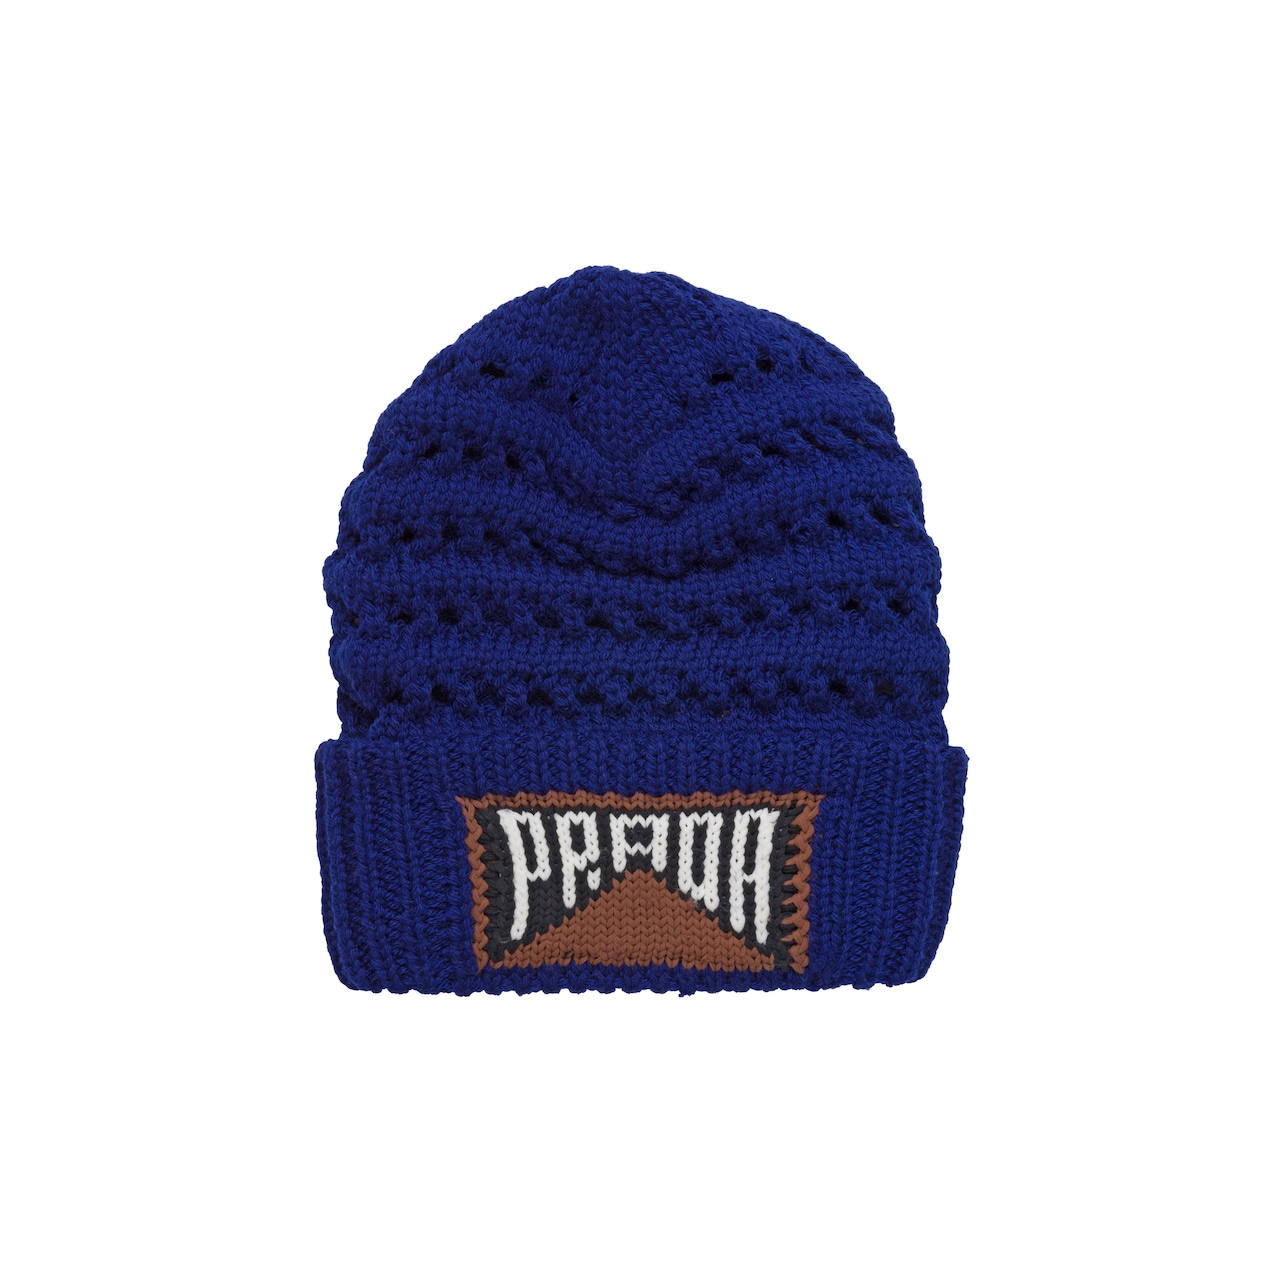 Wool beanie with logo